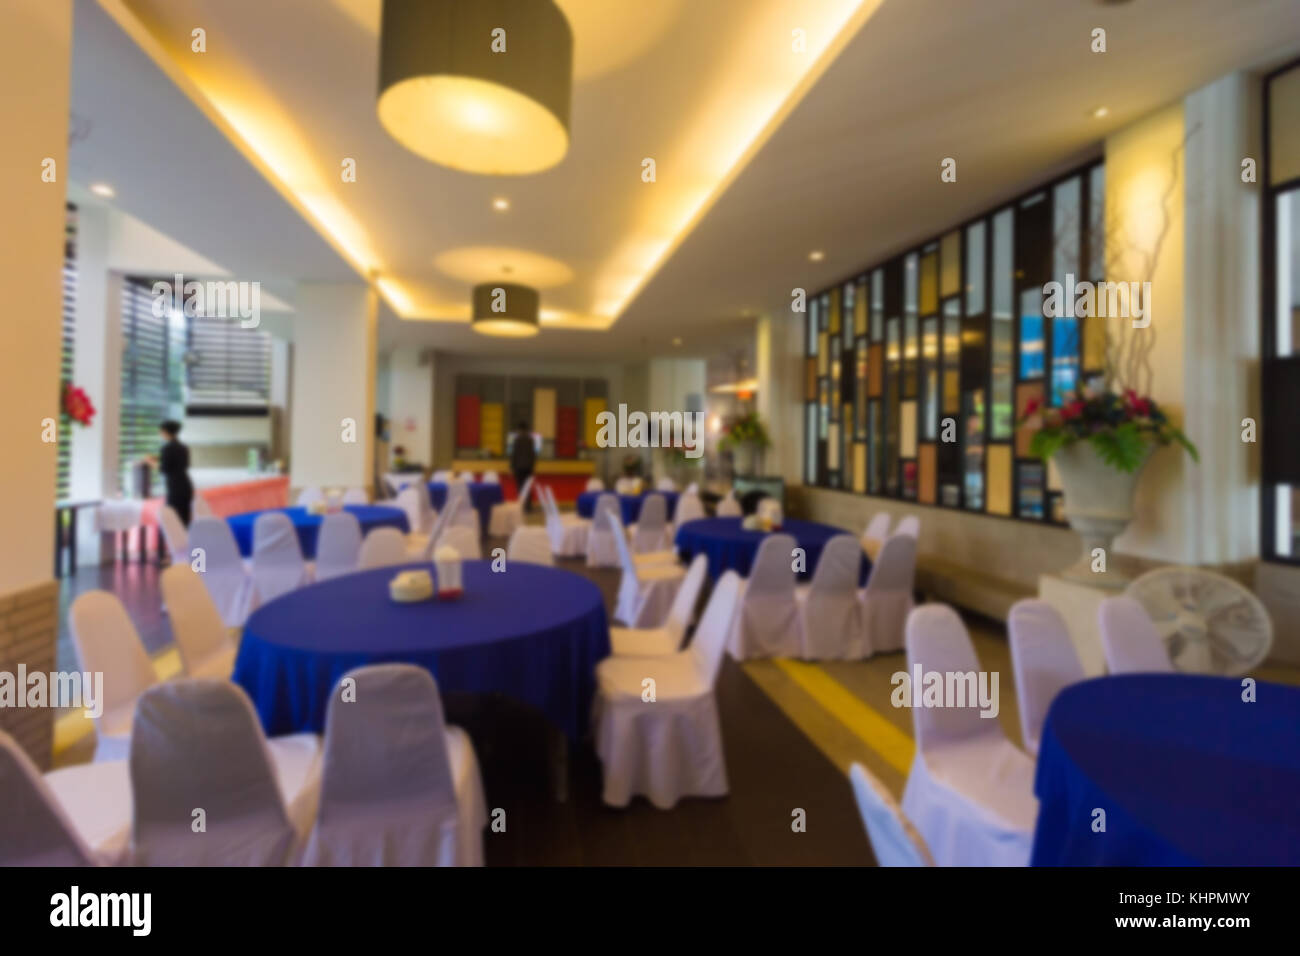 Dining room in the hotel blur,Dining table in the building,Dinner room - Stock Image